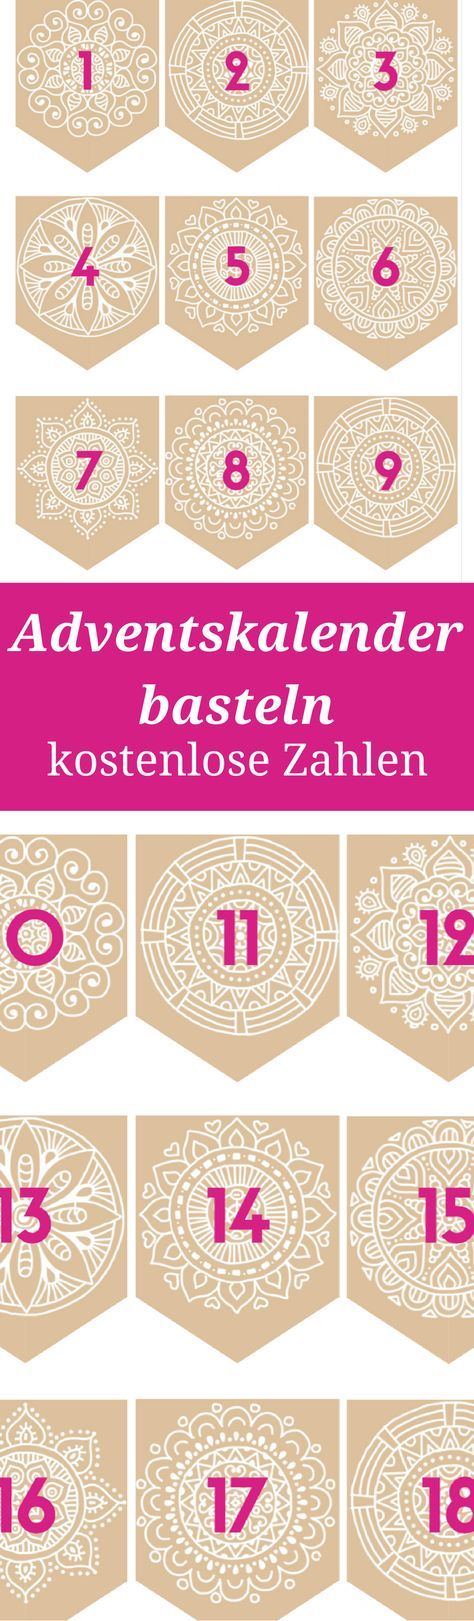 adventskalender basteln zahlen zum ausdrucken adventskalender basteln kostenlose vorlagen. Black Bedroom Furniture Sets. Home Design Ideas